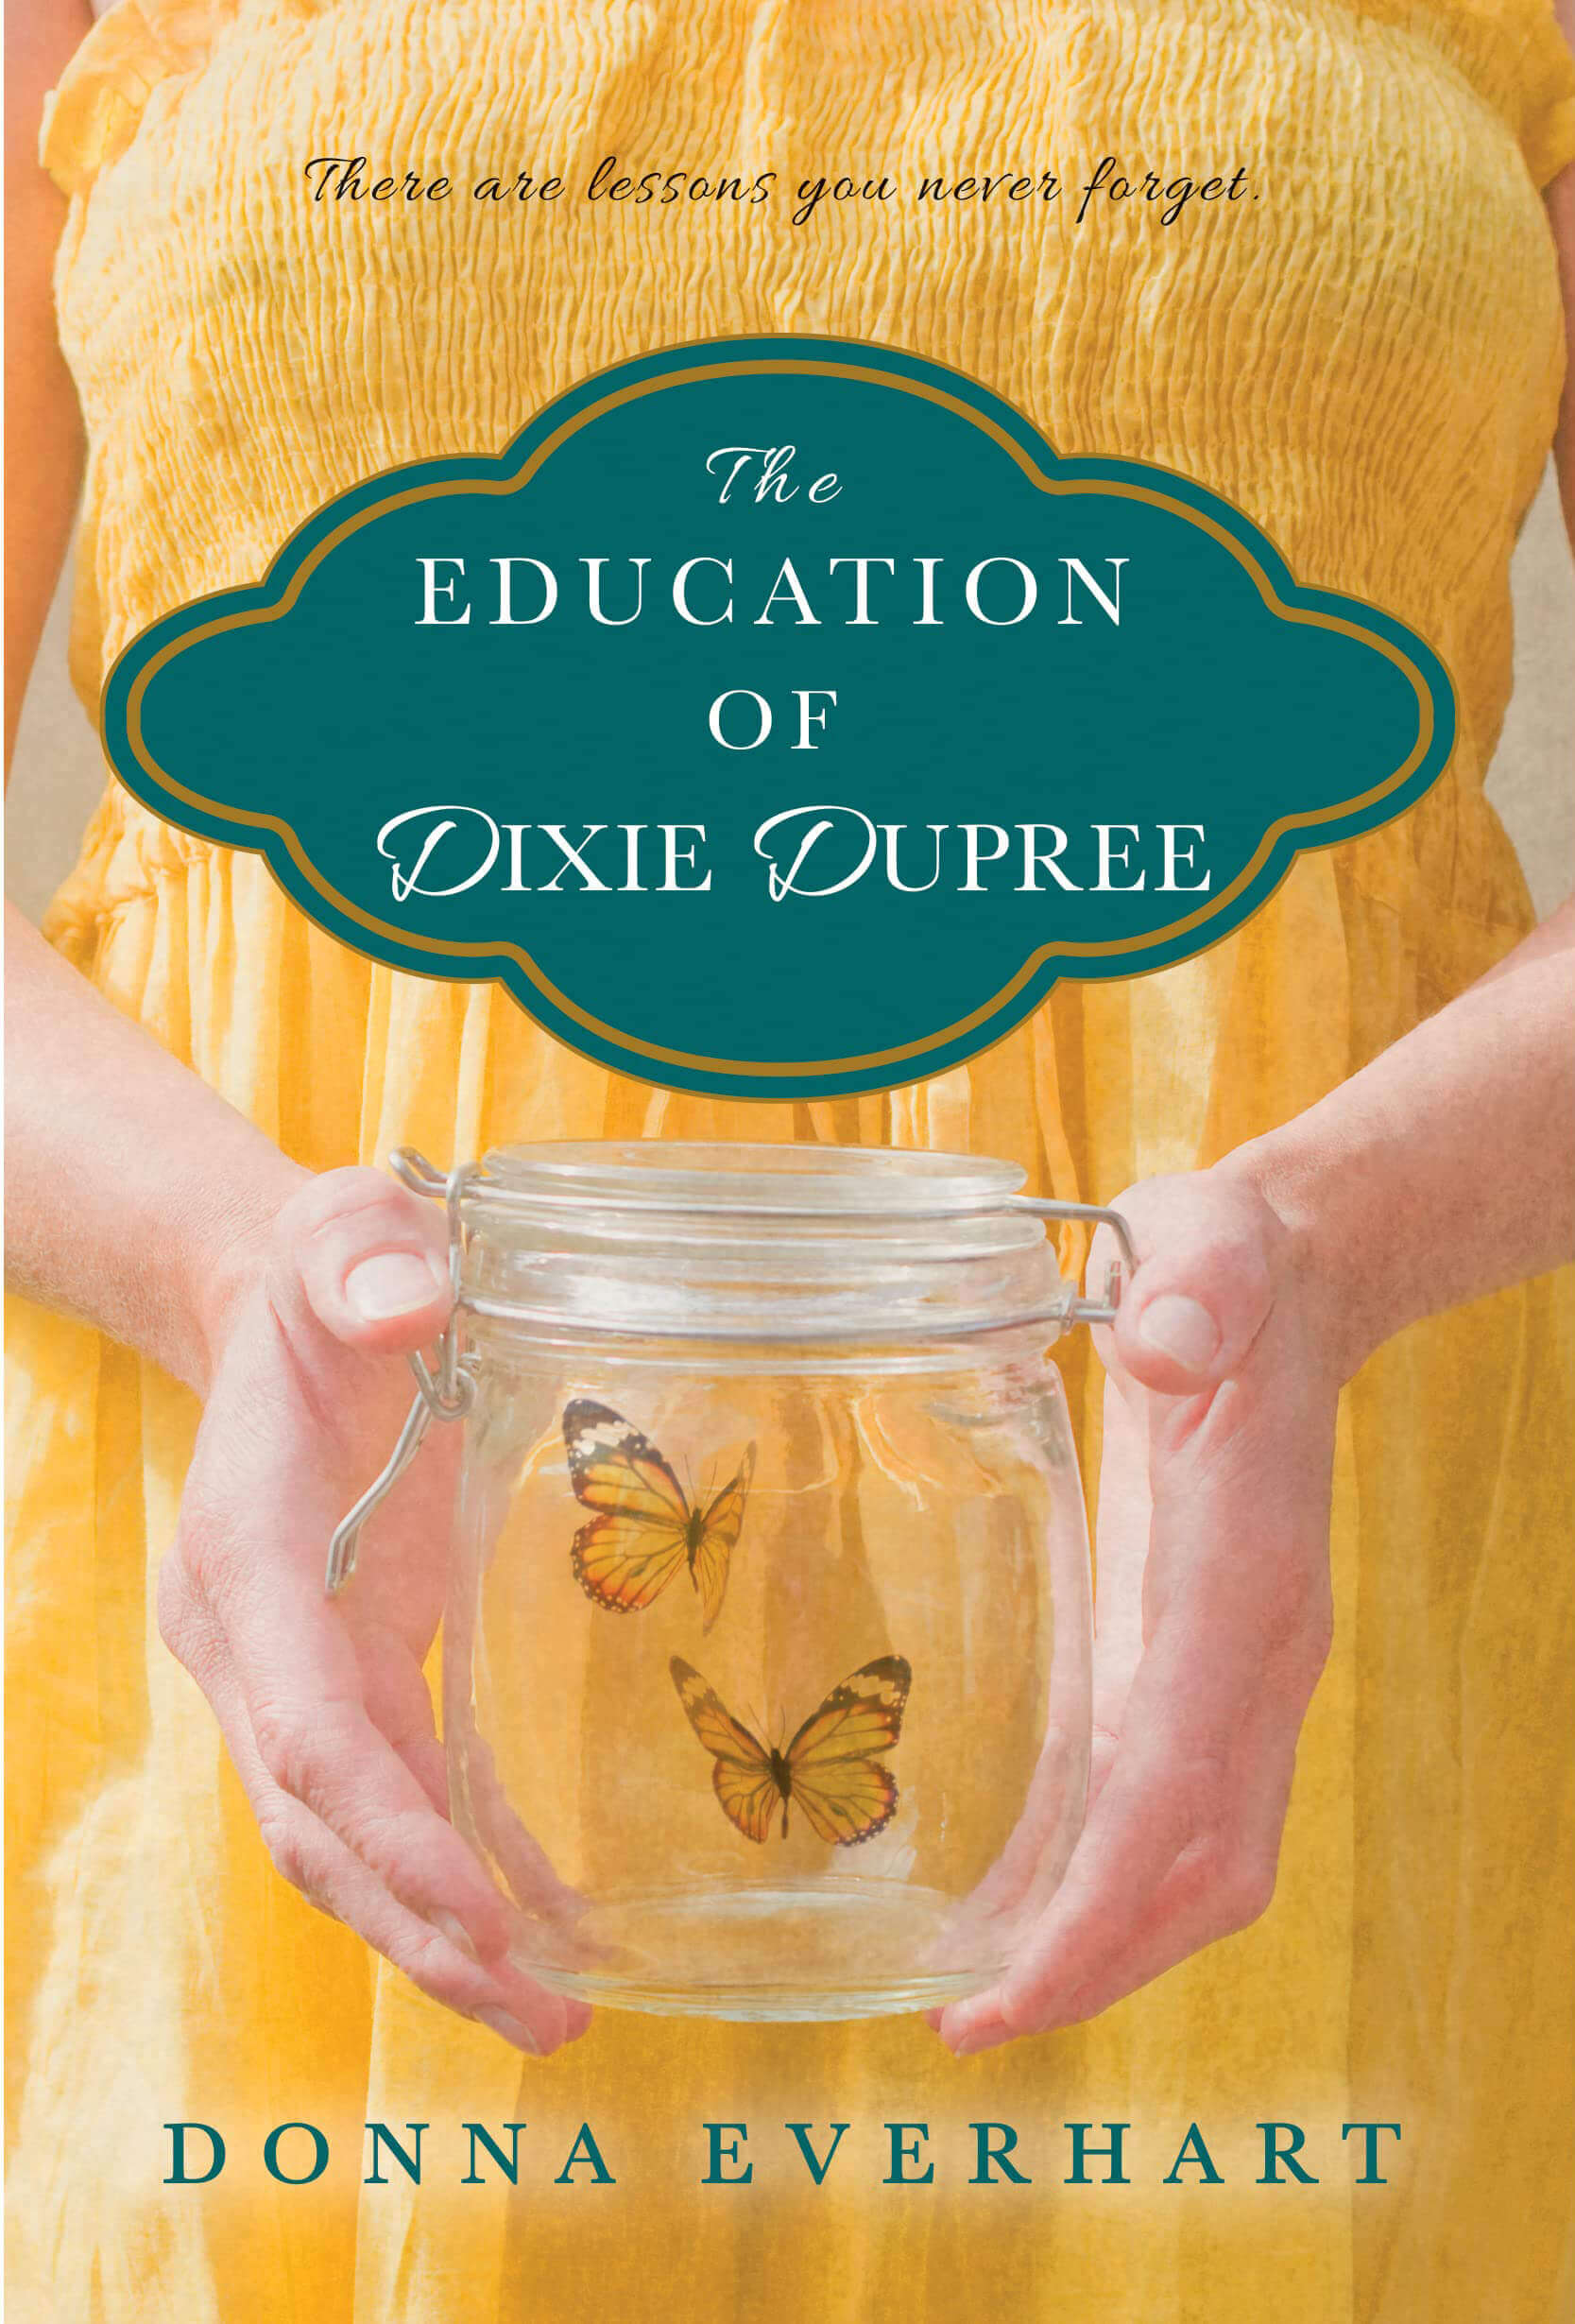 The Education of Dixie Dupree Book by Donna Everhart